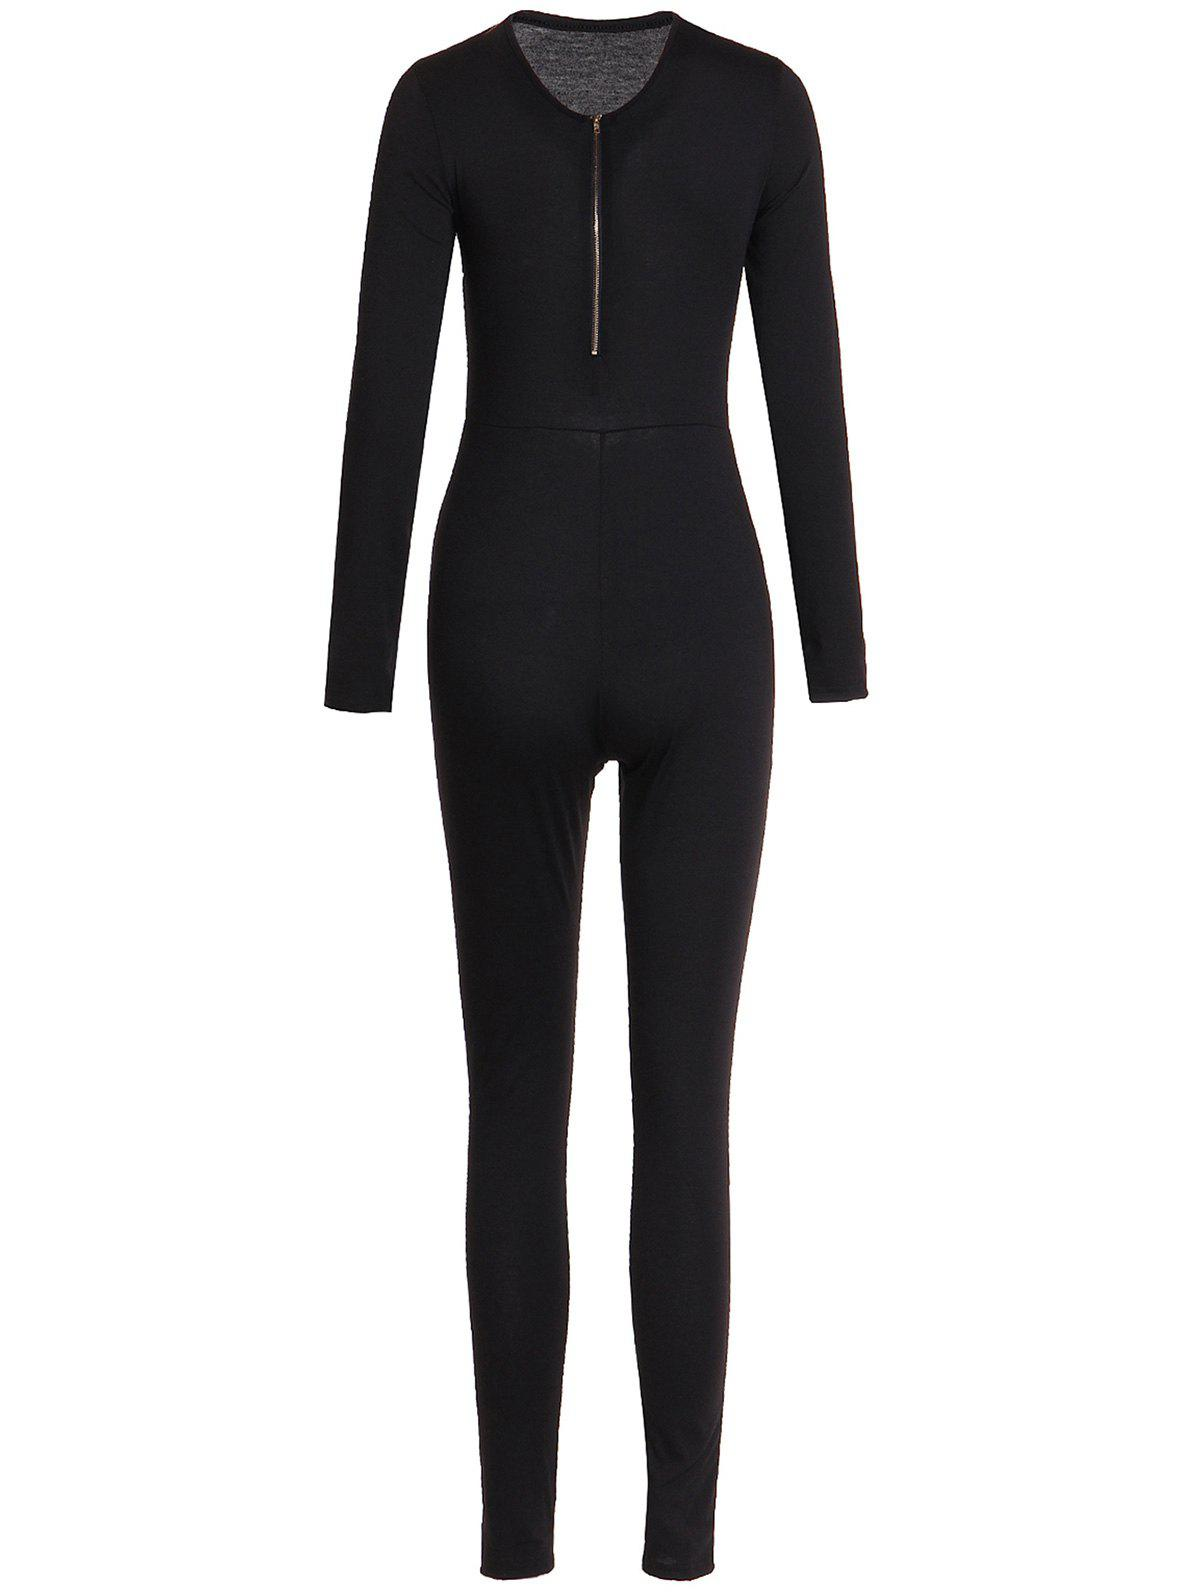 Solid Color Zippered V-Neck Long Sleeve Bodycon Jumpsuit For Women - BLACK XL